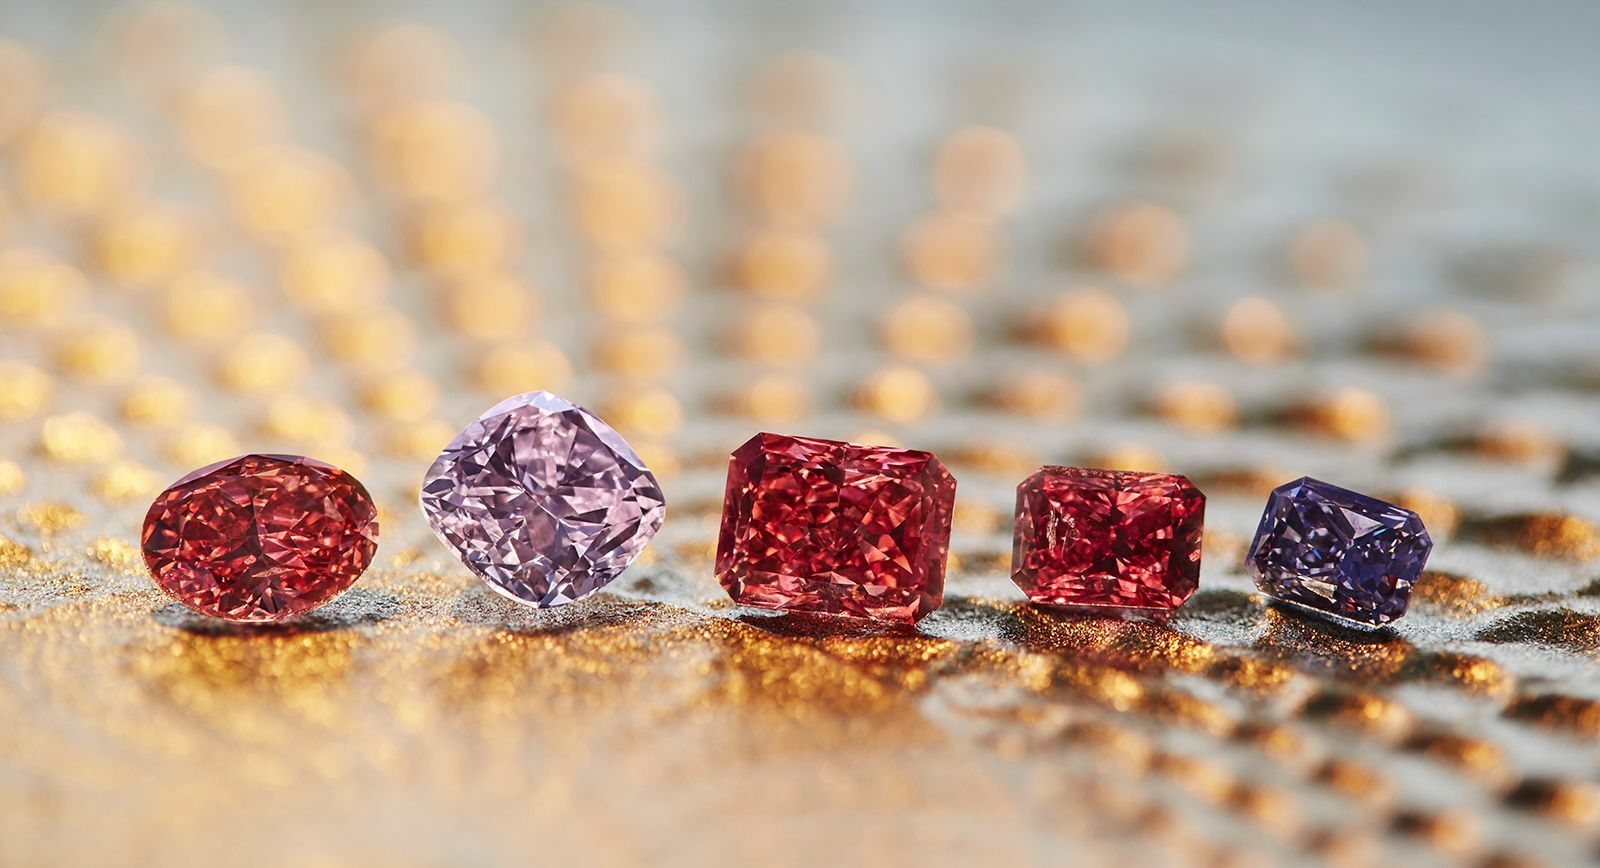 Rio Tinto presents 'Custodians of Rare Beauty' tender Rio Tinto presents 'Custodians of Rare Beauty' tender and the largest Fancy Red diamond in the history of the Argyle Pink Diamonds Tender